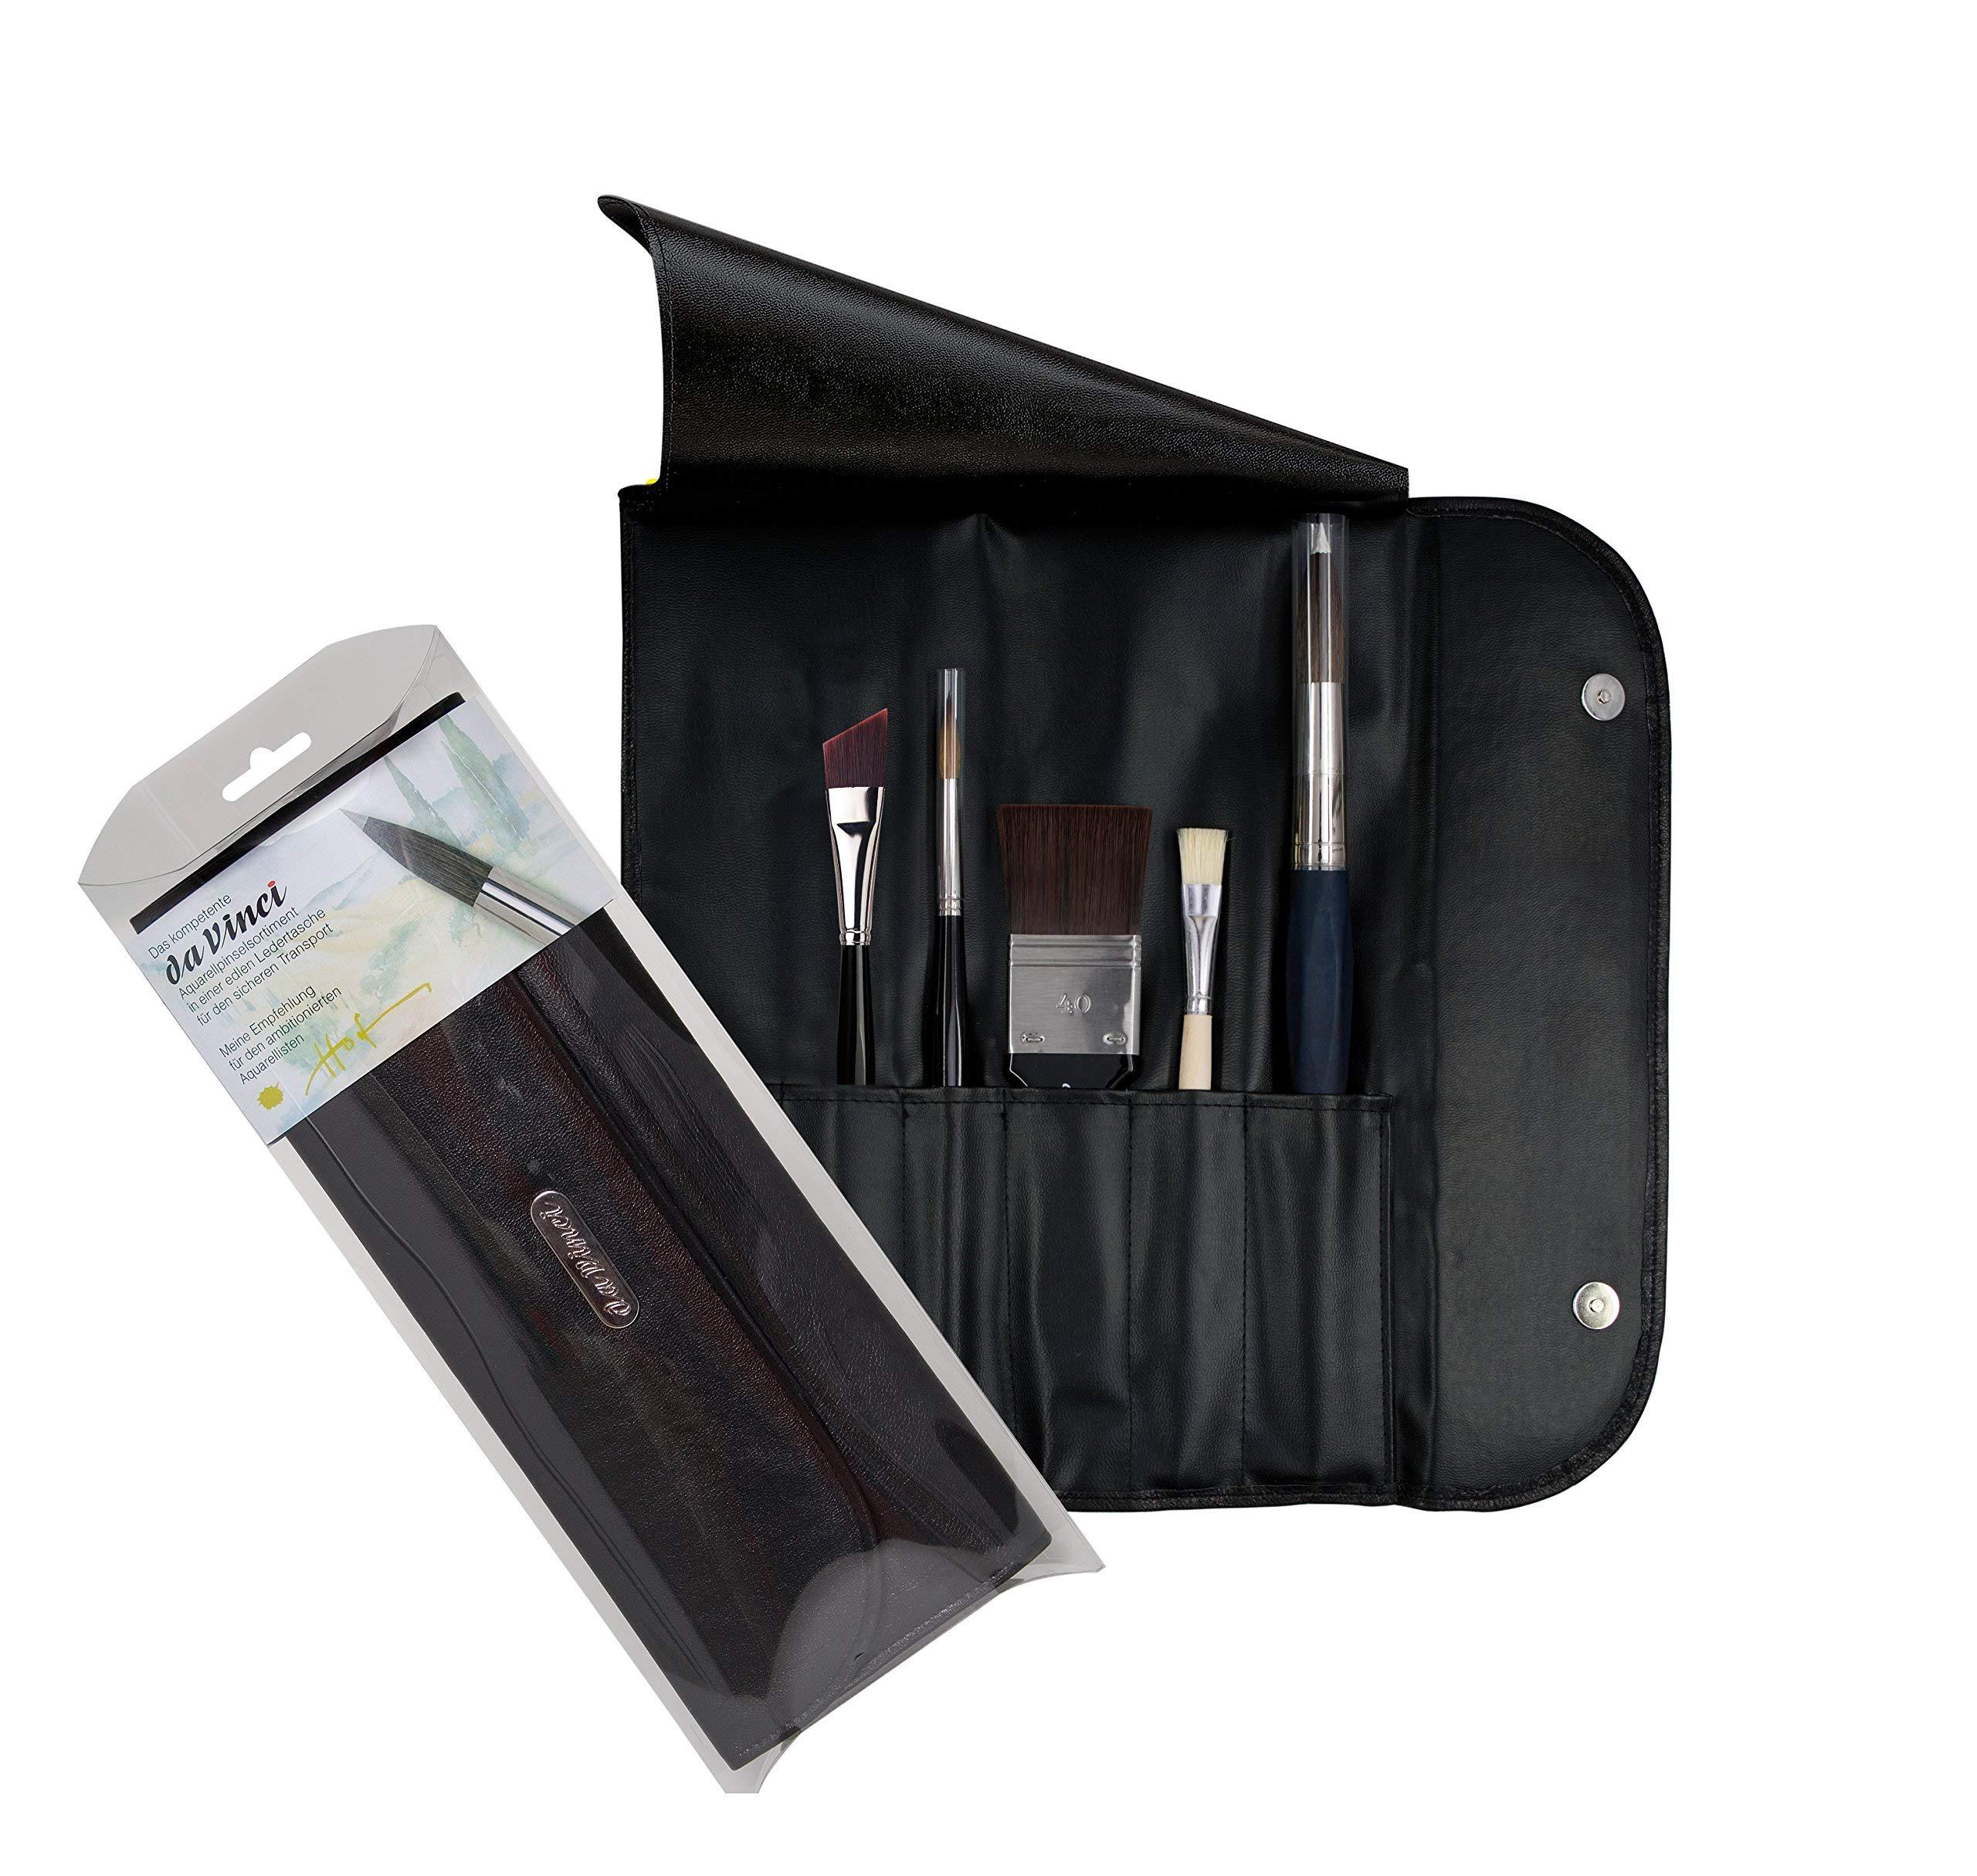 da Vinci Watercolor Series 5271 Ekkehardt Hofmann Paint Brush Set, Natural Hair and Synthetic with Leather Case, Multiple Sizes, 5 Brushes (Series 29, 35, 1383, 5040, 5535)